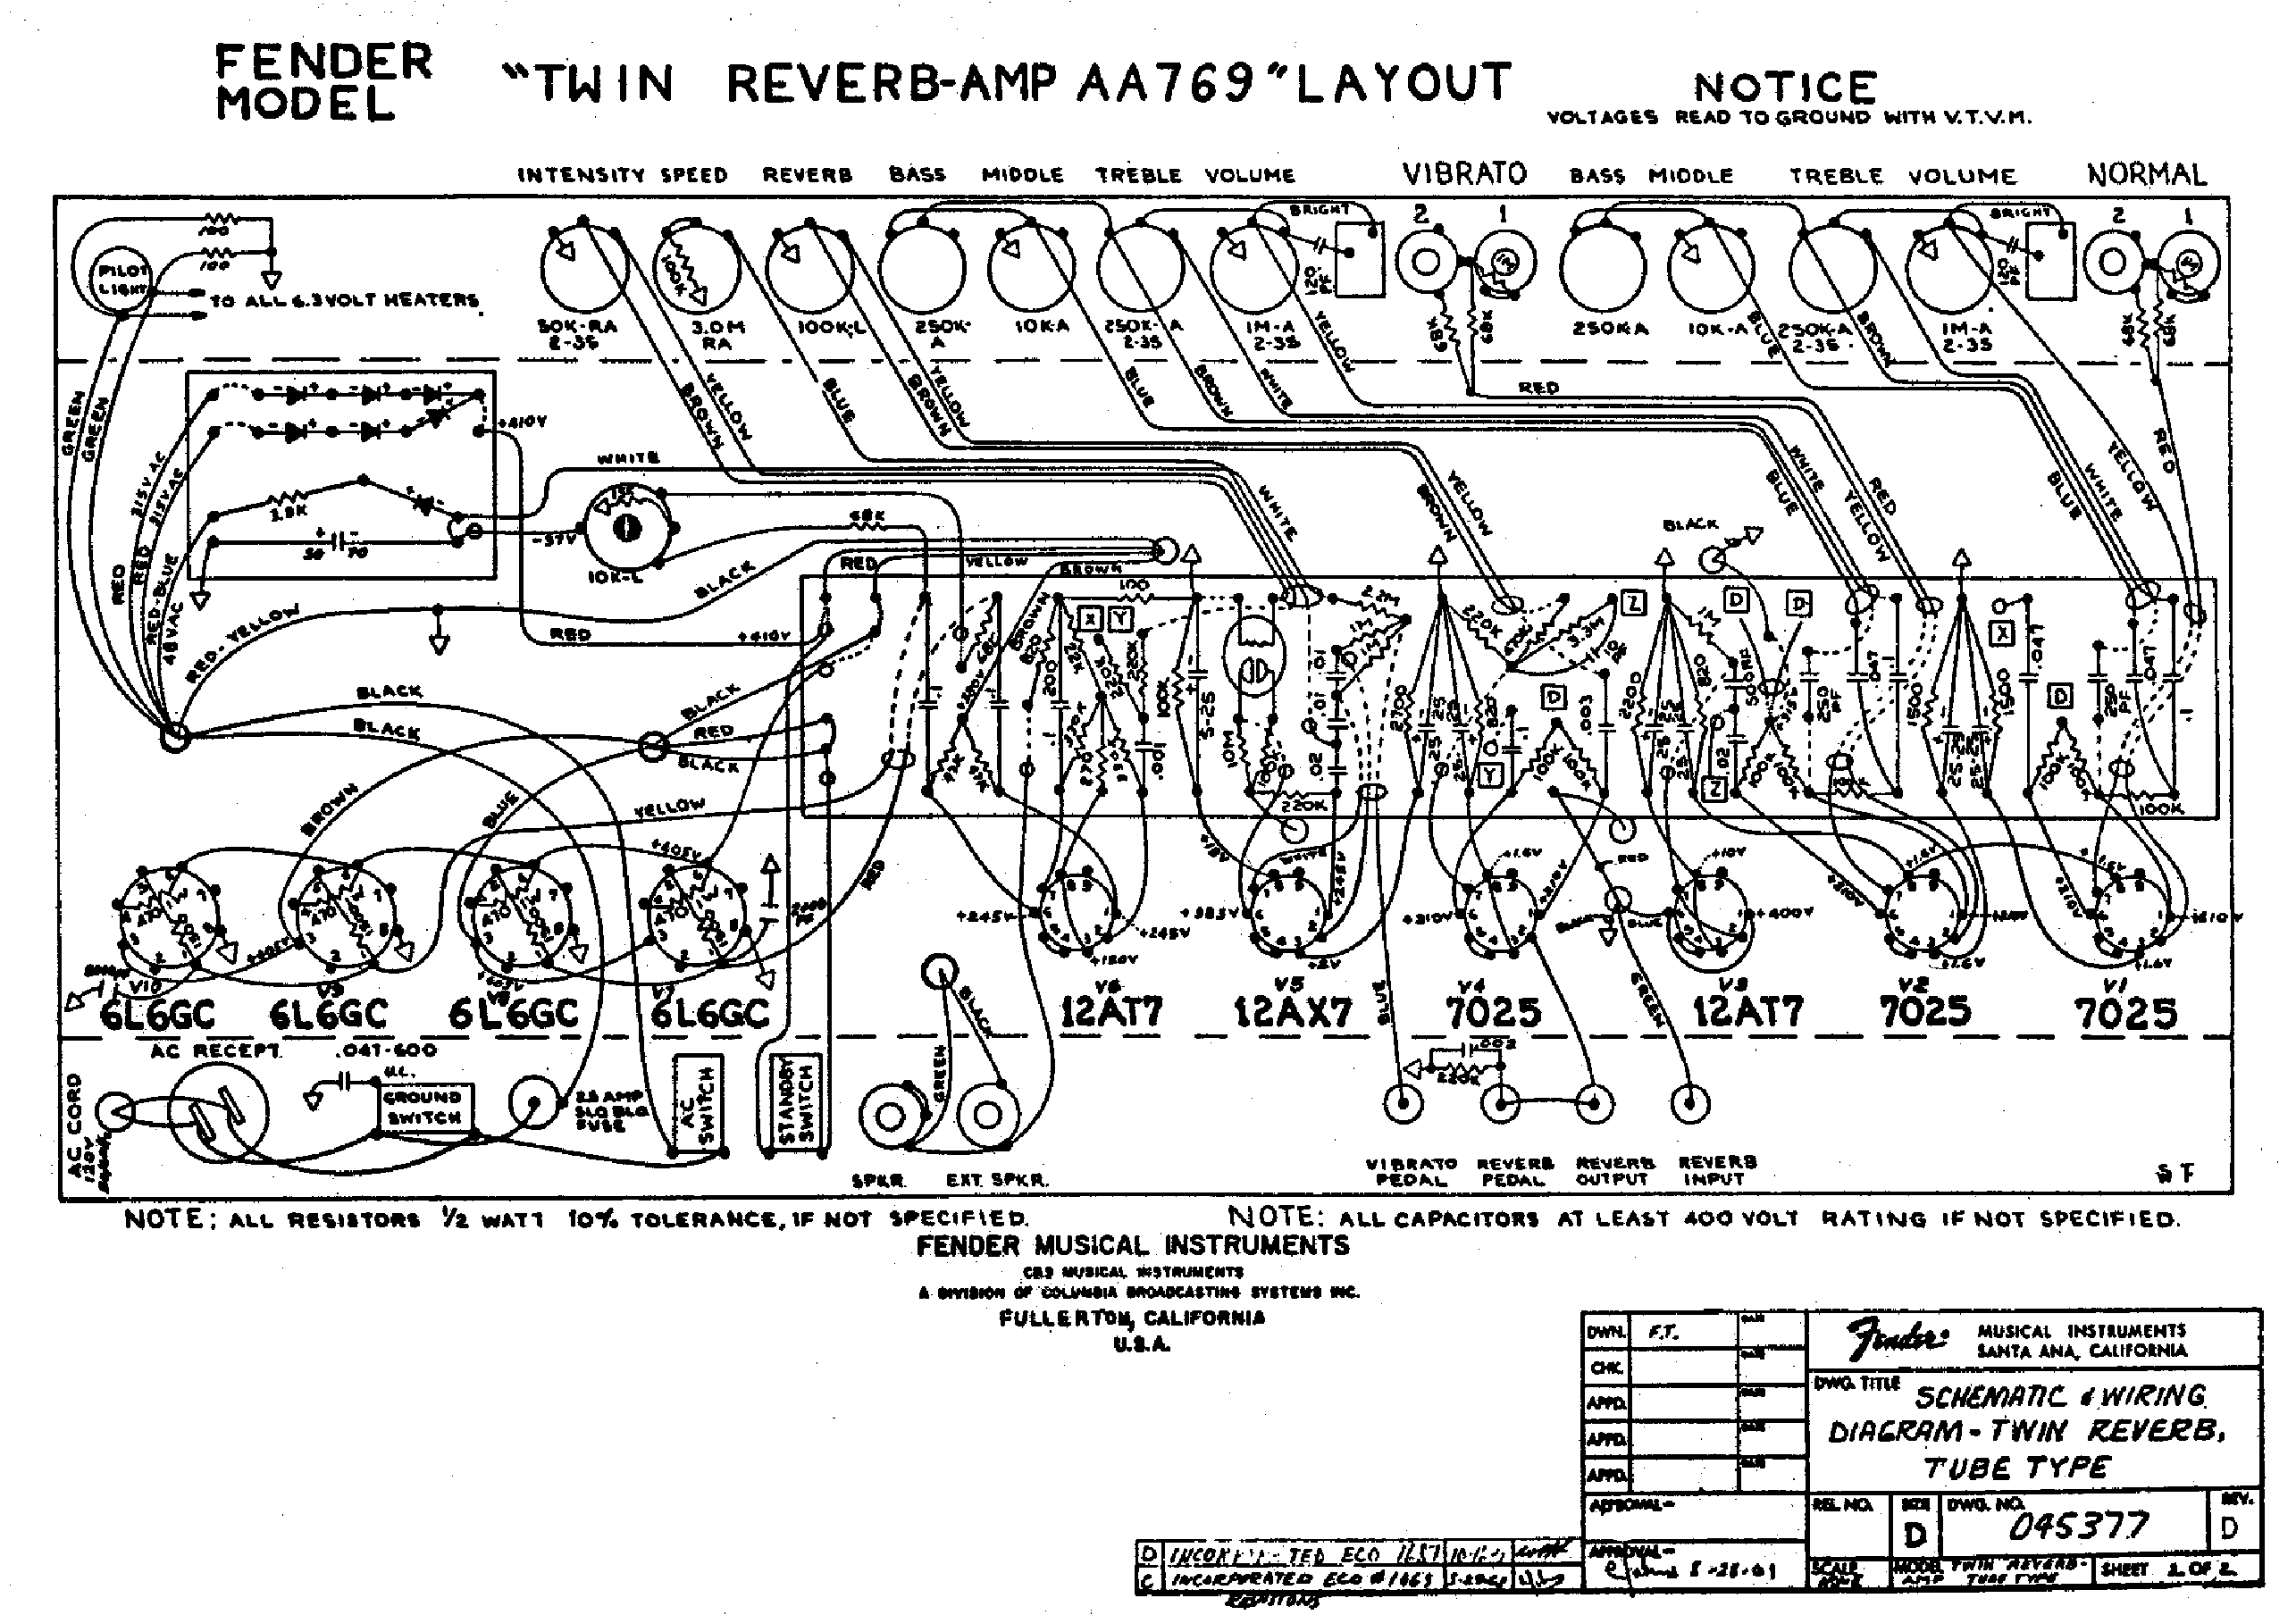 FENDER TWIN-REVERB-AA769-LAYOUT Service Manual download